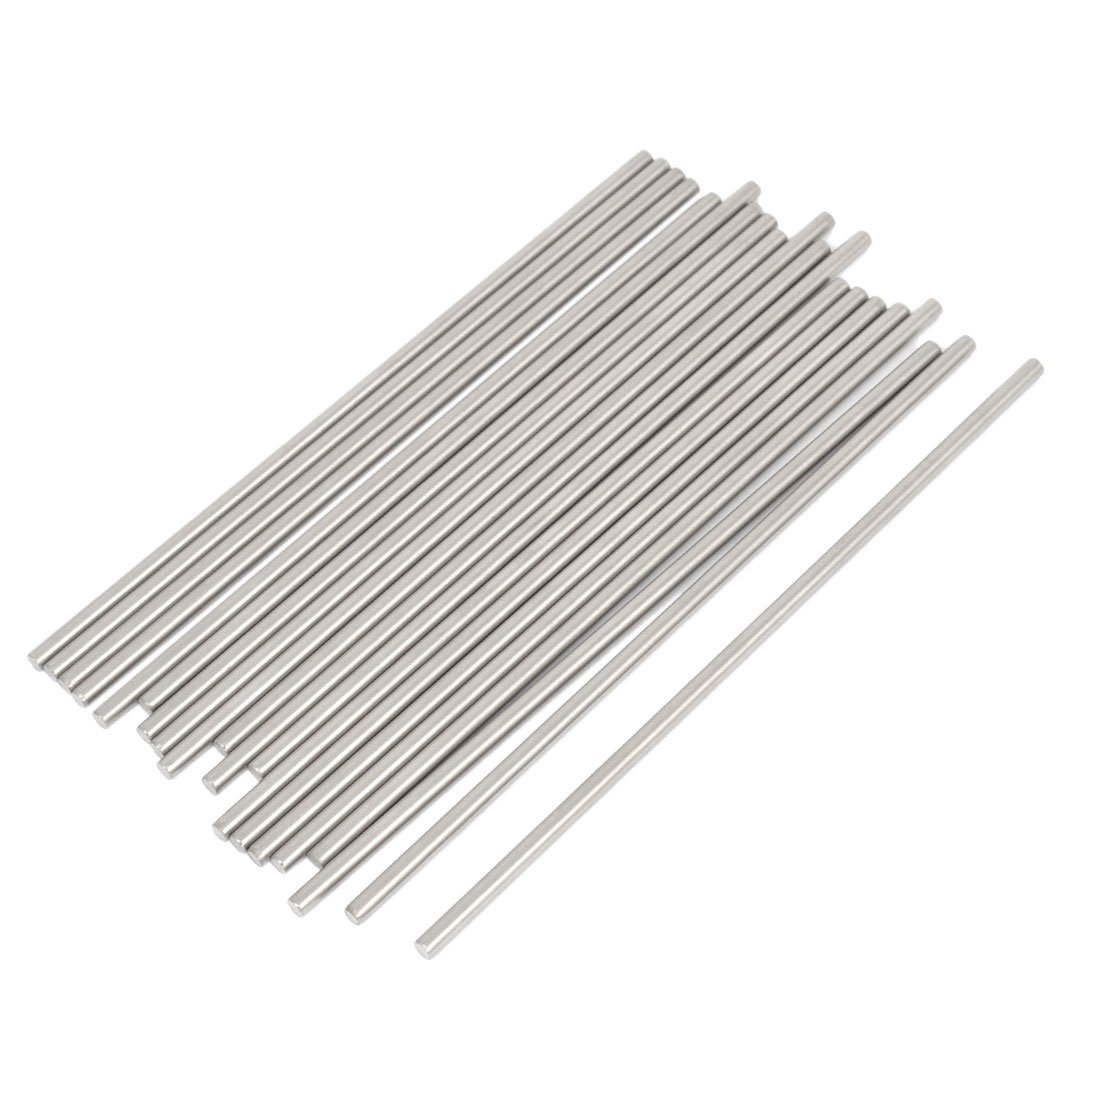 5 Pcs RC Airplane Stainless Steel Round Rods Axles Bars 3mm x 150mm